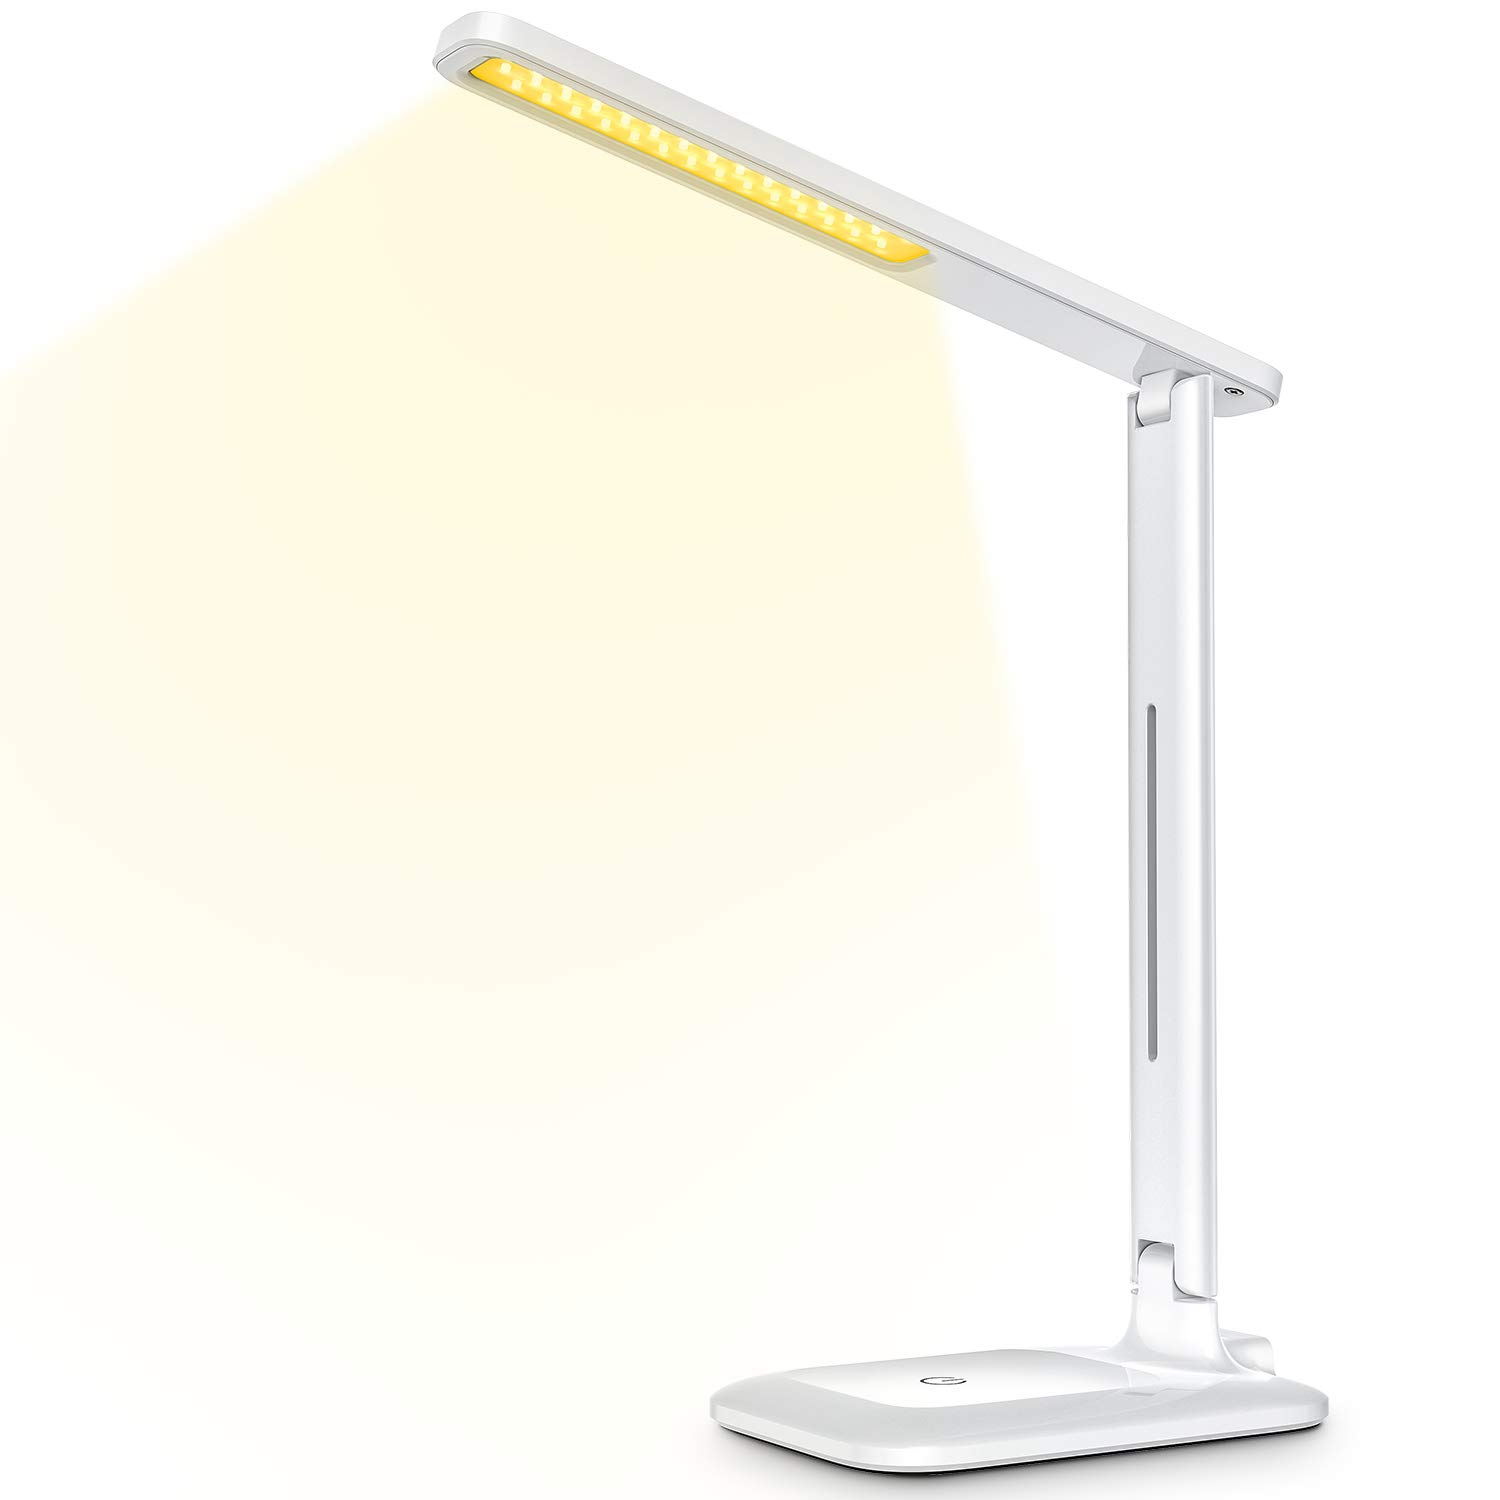 Home TOPELEK Eye-Caring Table Lamp Reading Warm White Sensitive Touch Control Working Stepless dimming Portable and Compact Studying for Office LED Desk Lamp